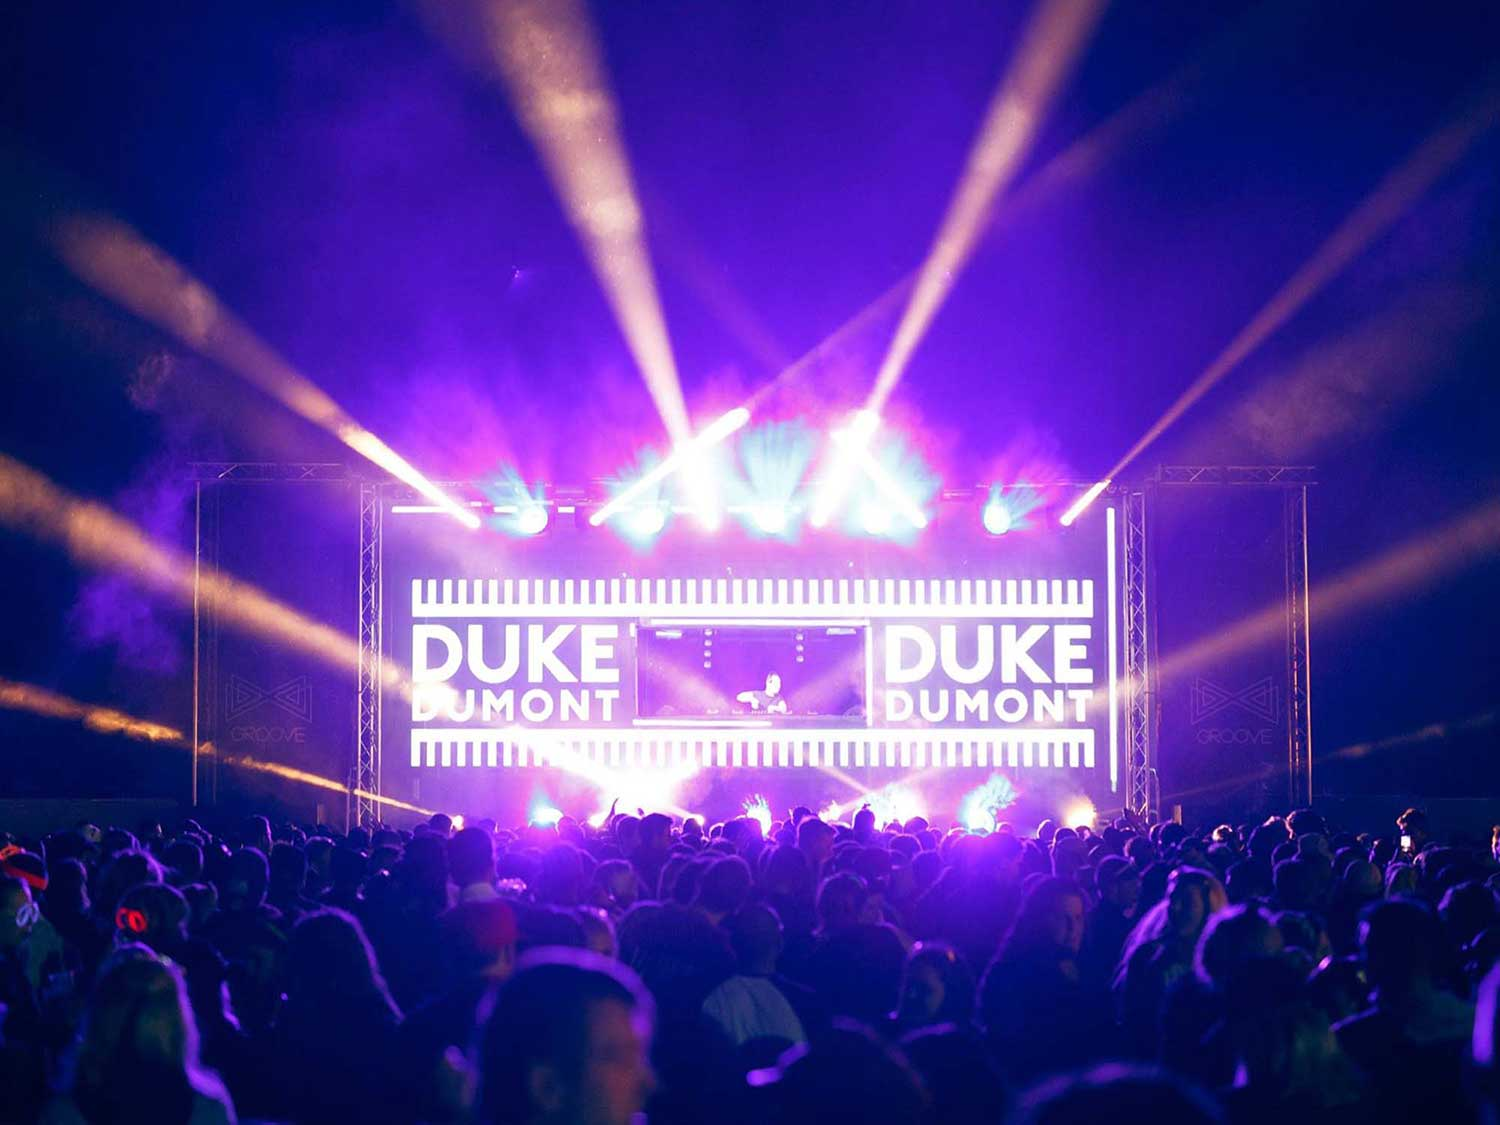 Groove VJing set projections for Duke Dumont